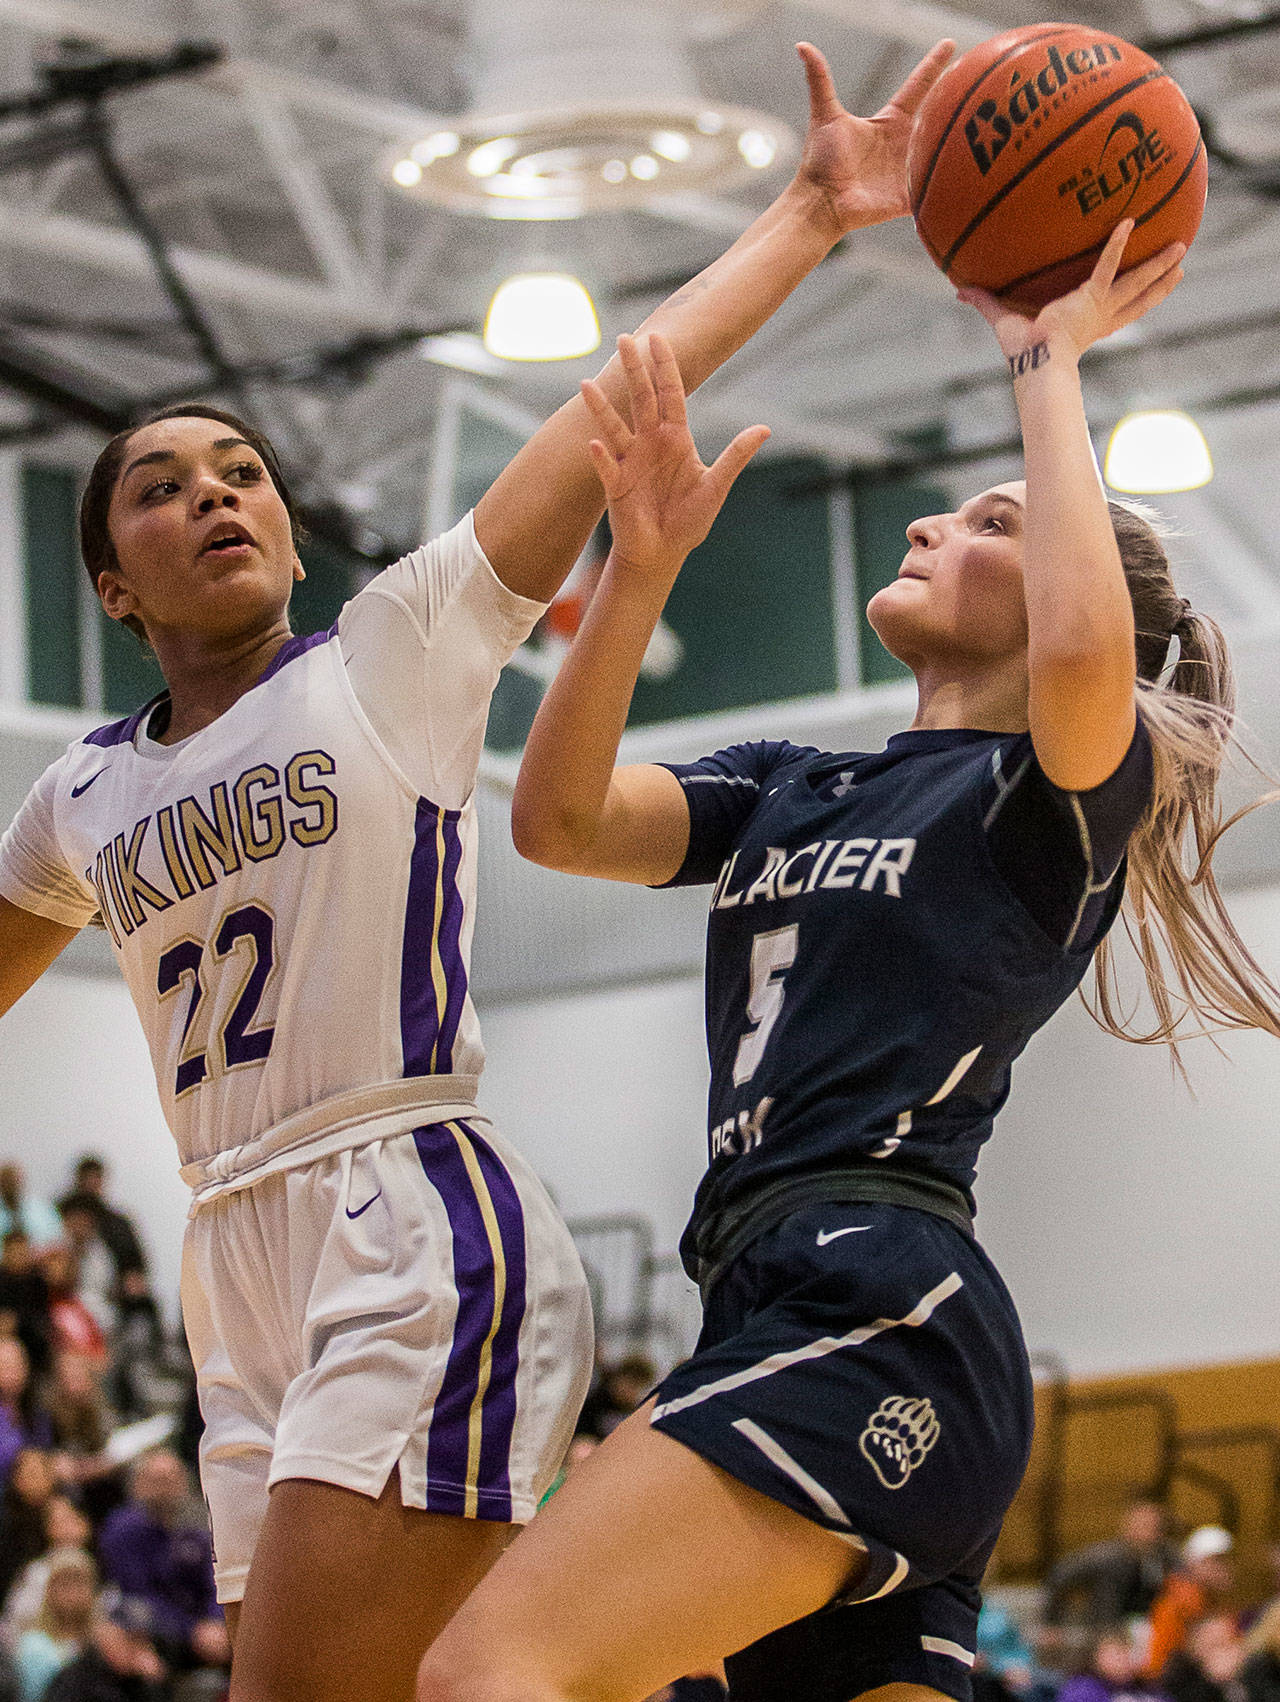 Raigan Reed of Lake Stevens (left) attempts to block a shot by Glacier Peak's Shay Sande during a game at Lake Stevens High School on Jan. 4, 2020. (Olivia Vanni / The Herald).